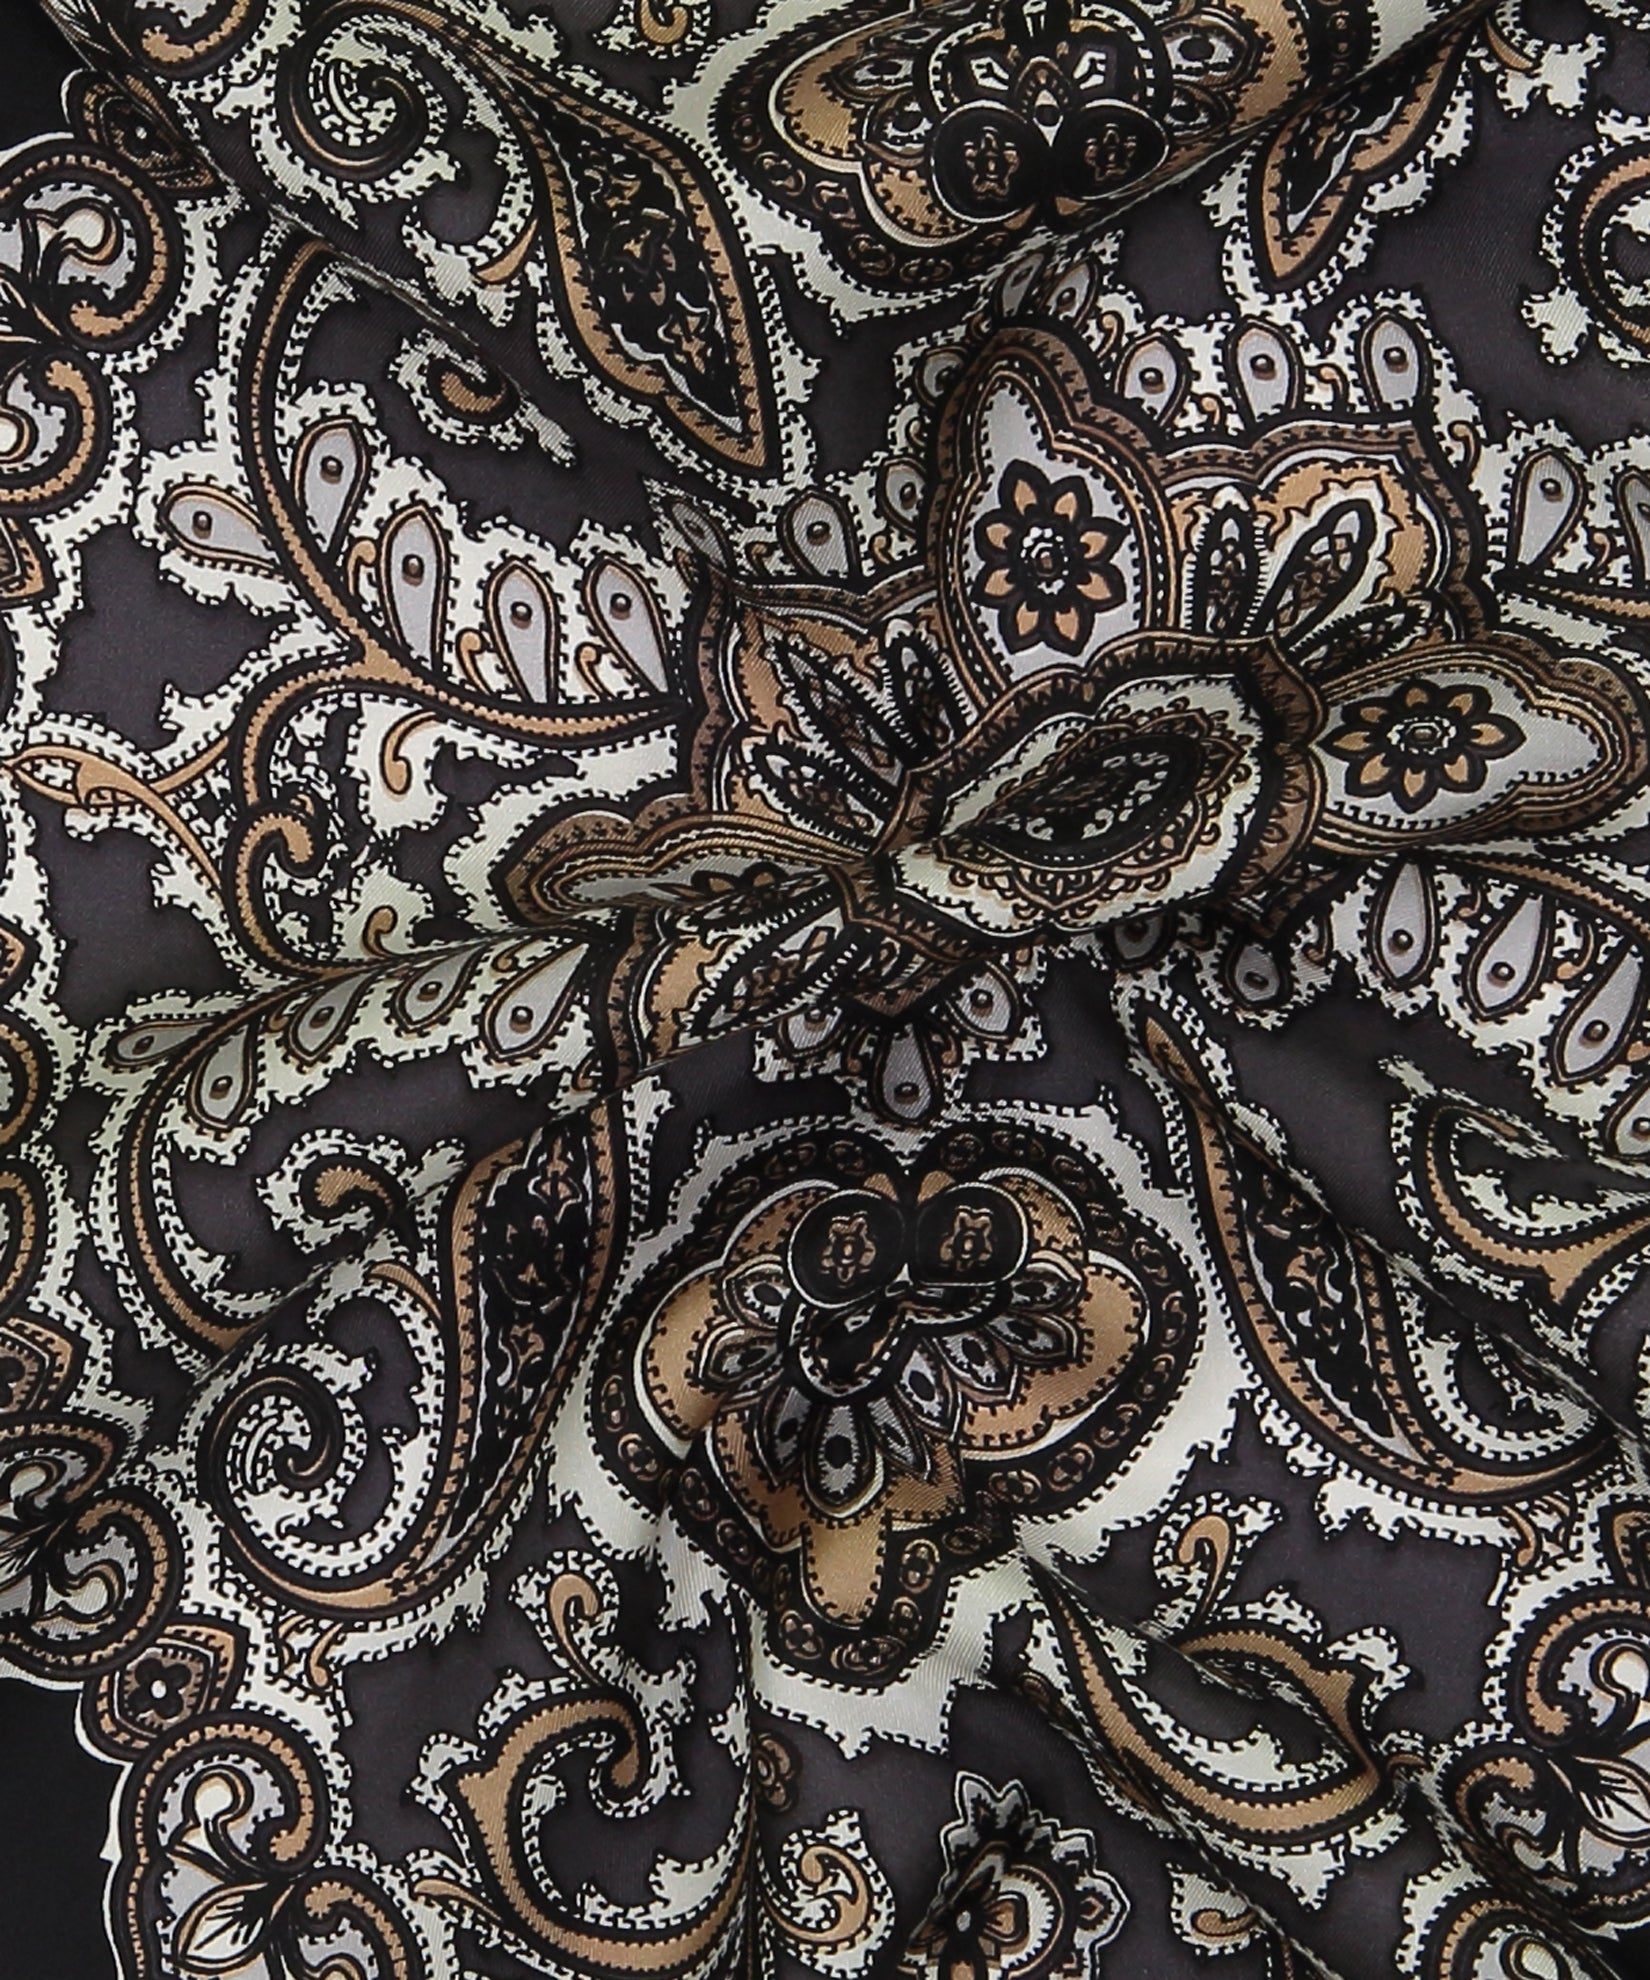 Black - Ornate Paisley Silk Diamond